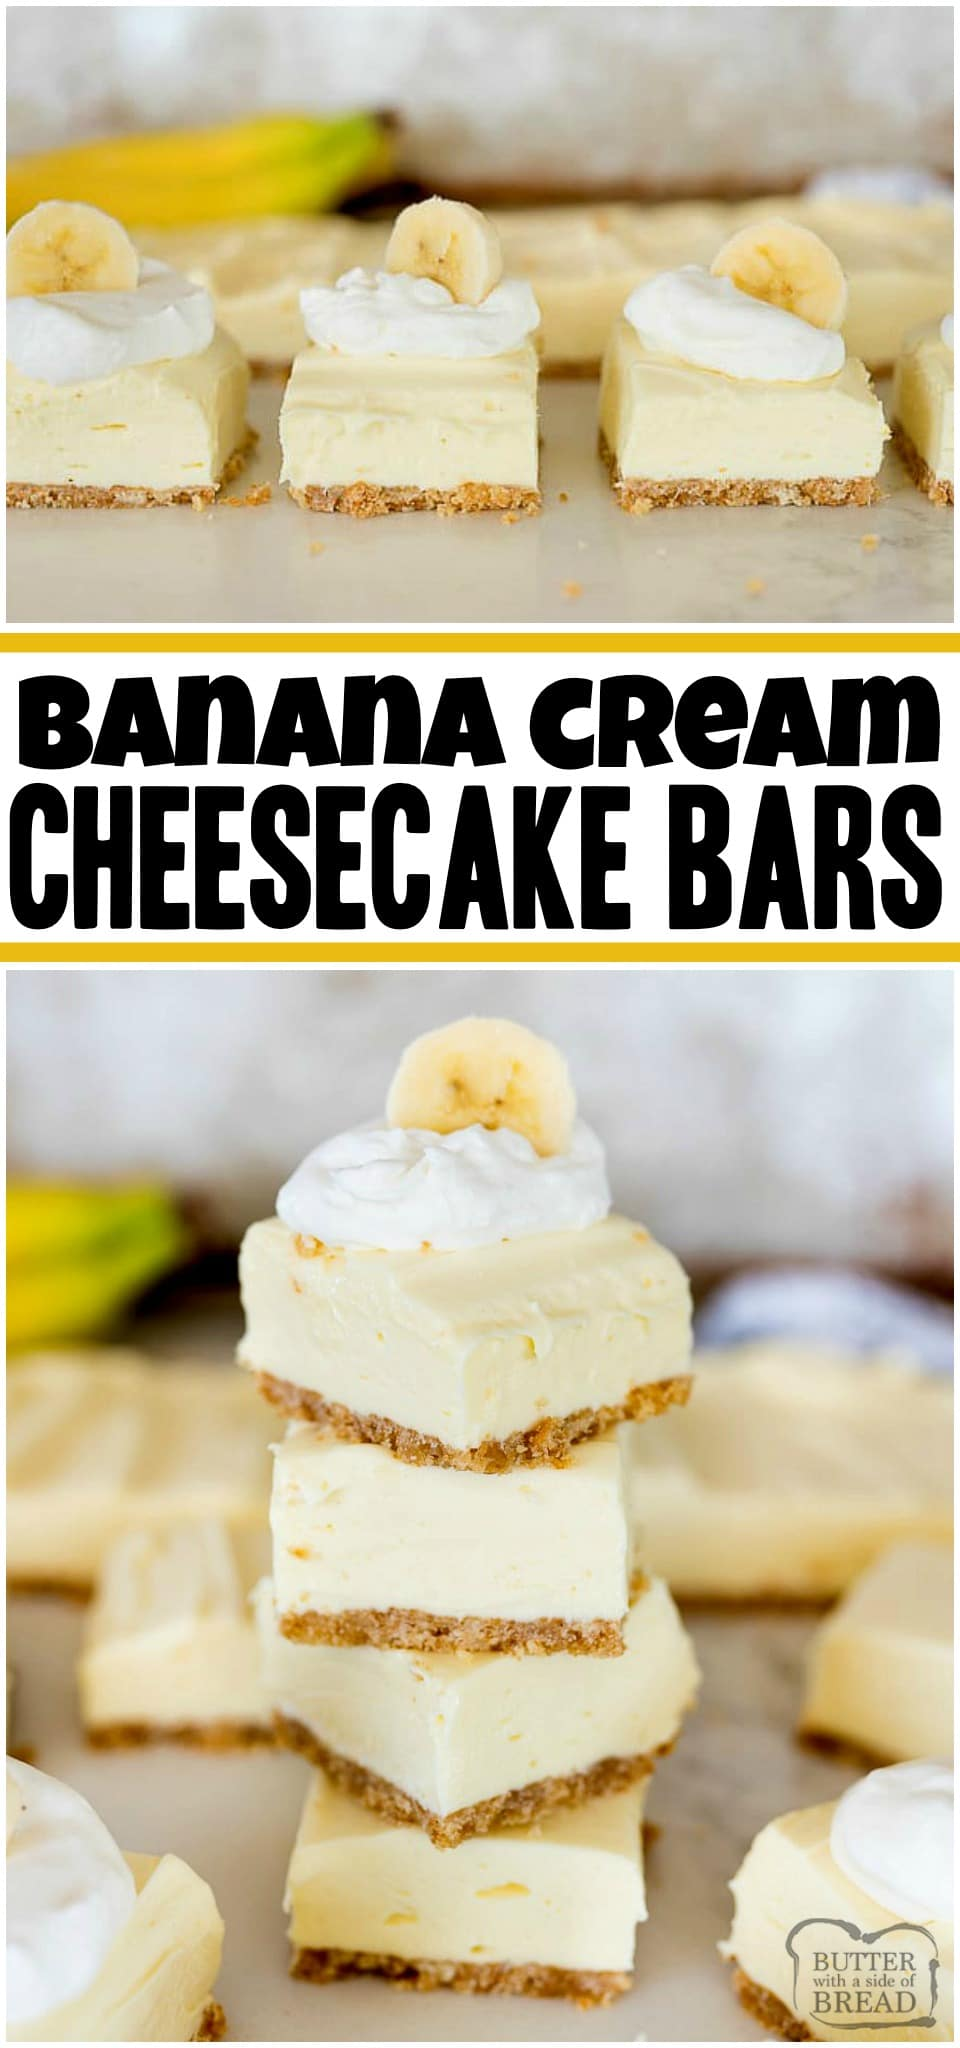 Banana Cream Cheesecake Bars is a simple, no bake cheesecake recipe with incredible banana flavor! Easy banana cheesecake recipe that everyone loves!